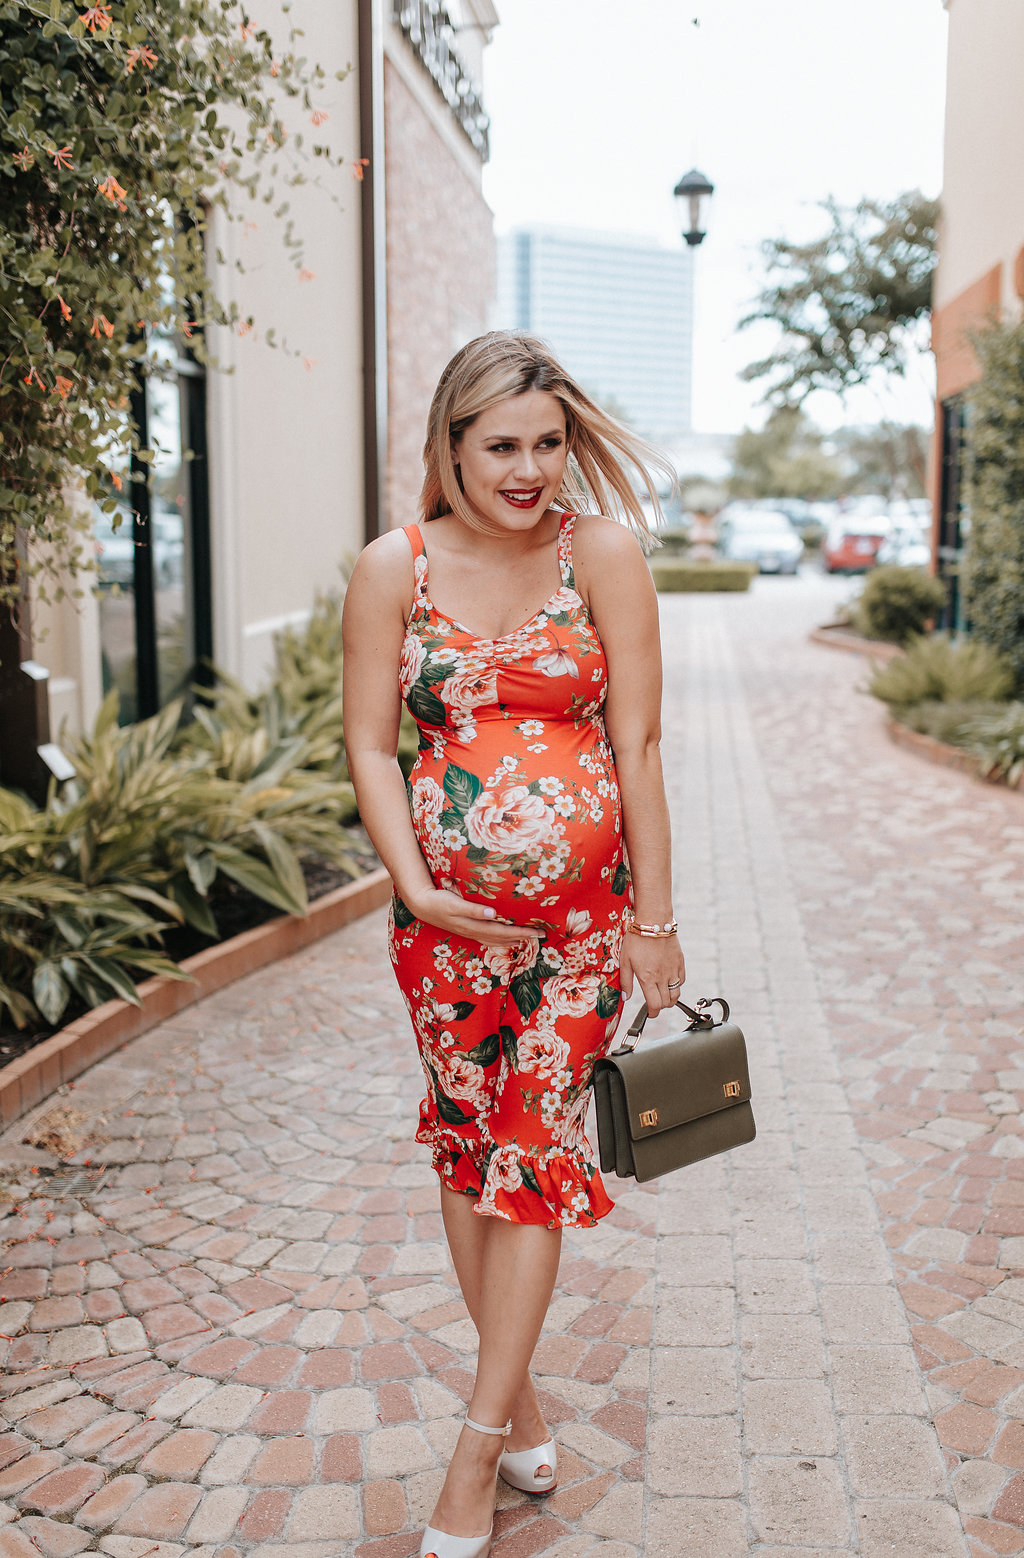 Maternity Fashion | Floral dress | ASOS Maternity dress | Summer Dress | Uptown with Elly Brown